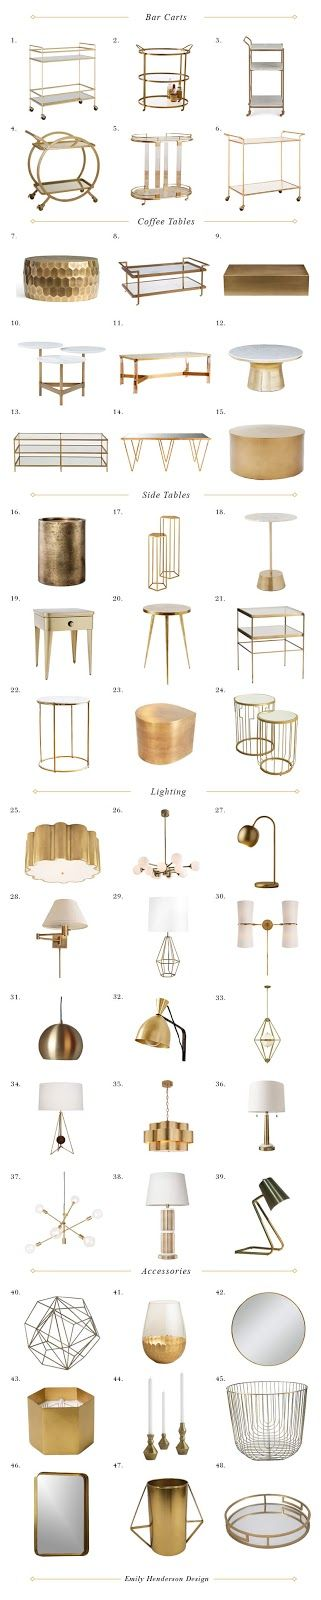 Gold Accents-Metals and metallic finishes-living room-interior design-Home decor and accents ideas! #HaticoDesign #InteriorDesign #LivingRoomDecor